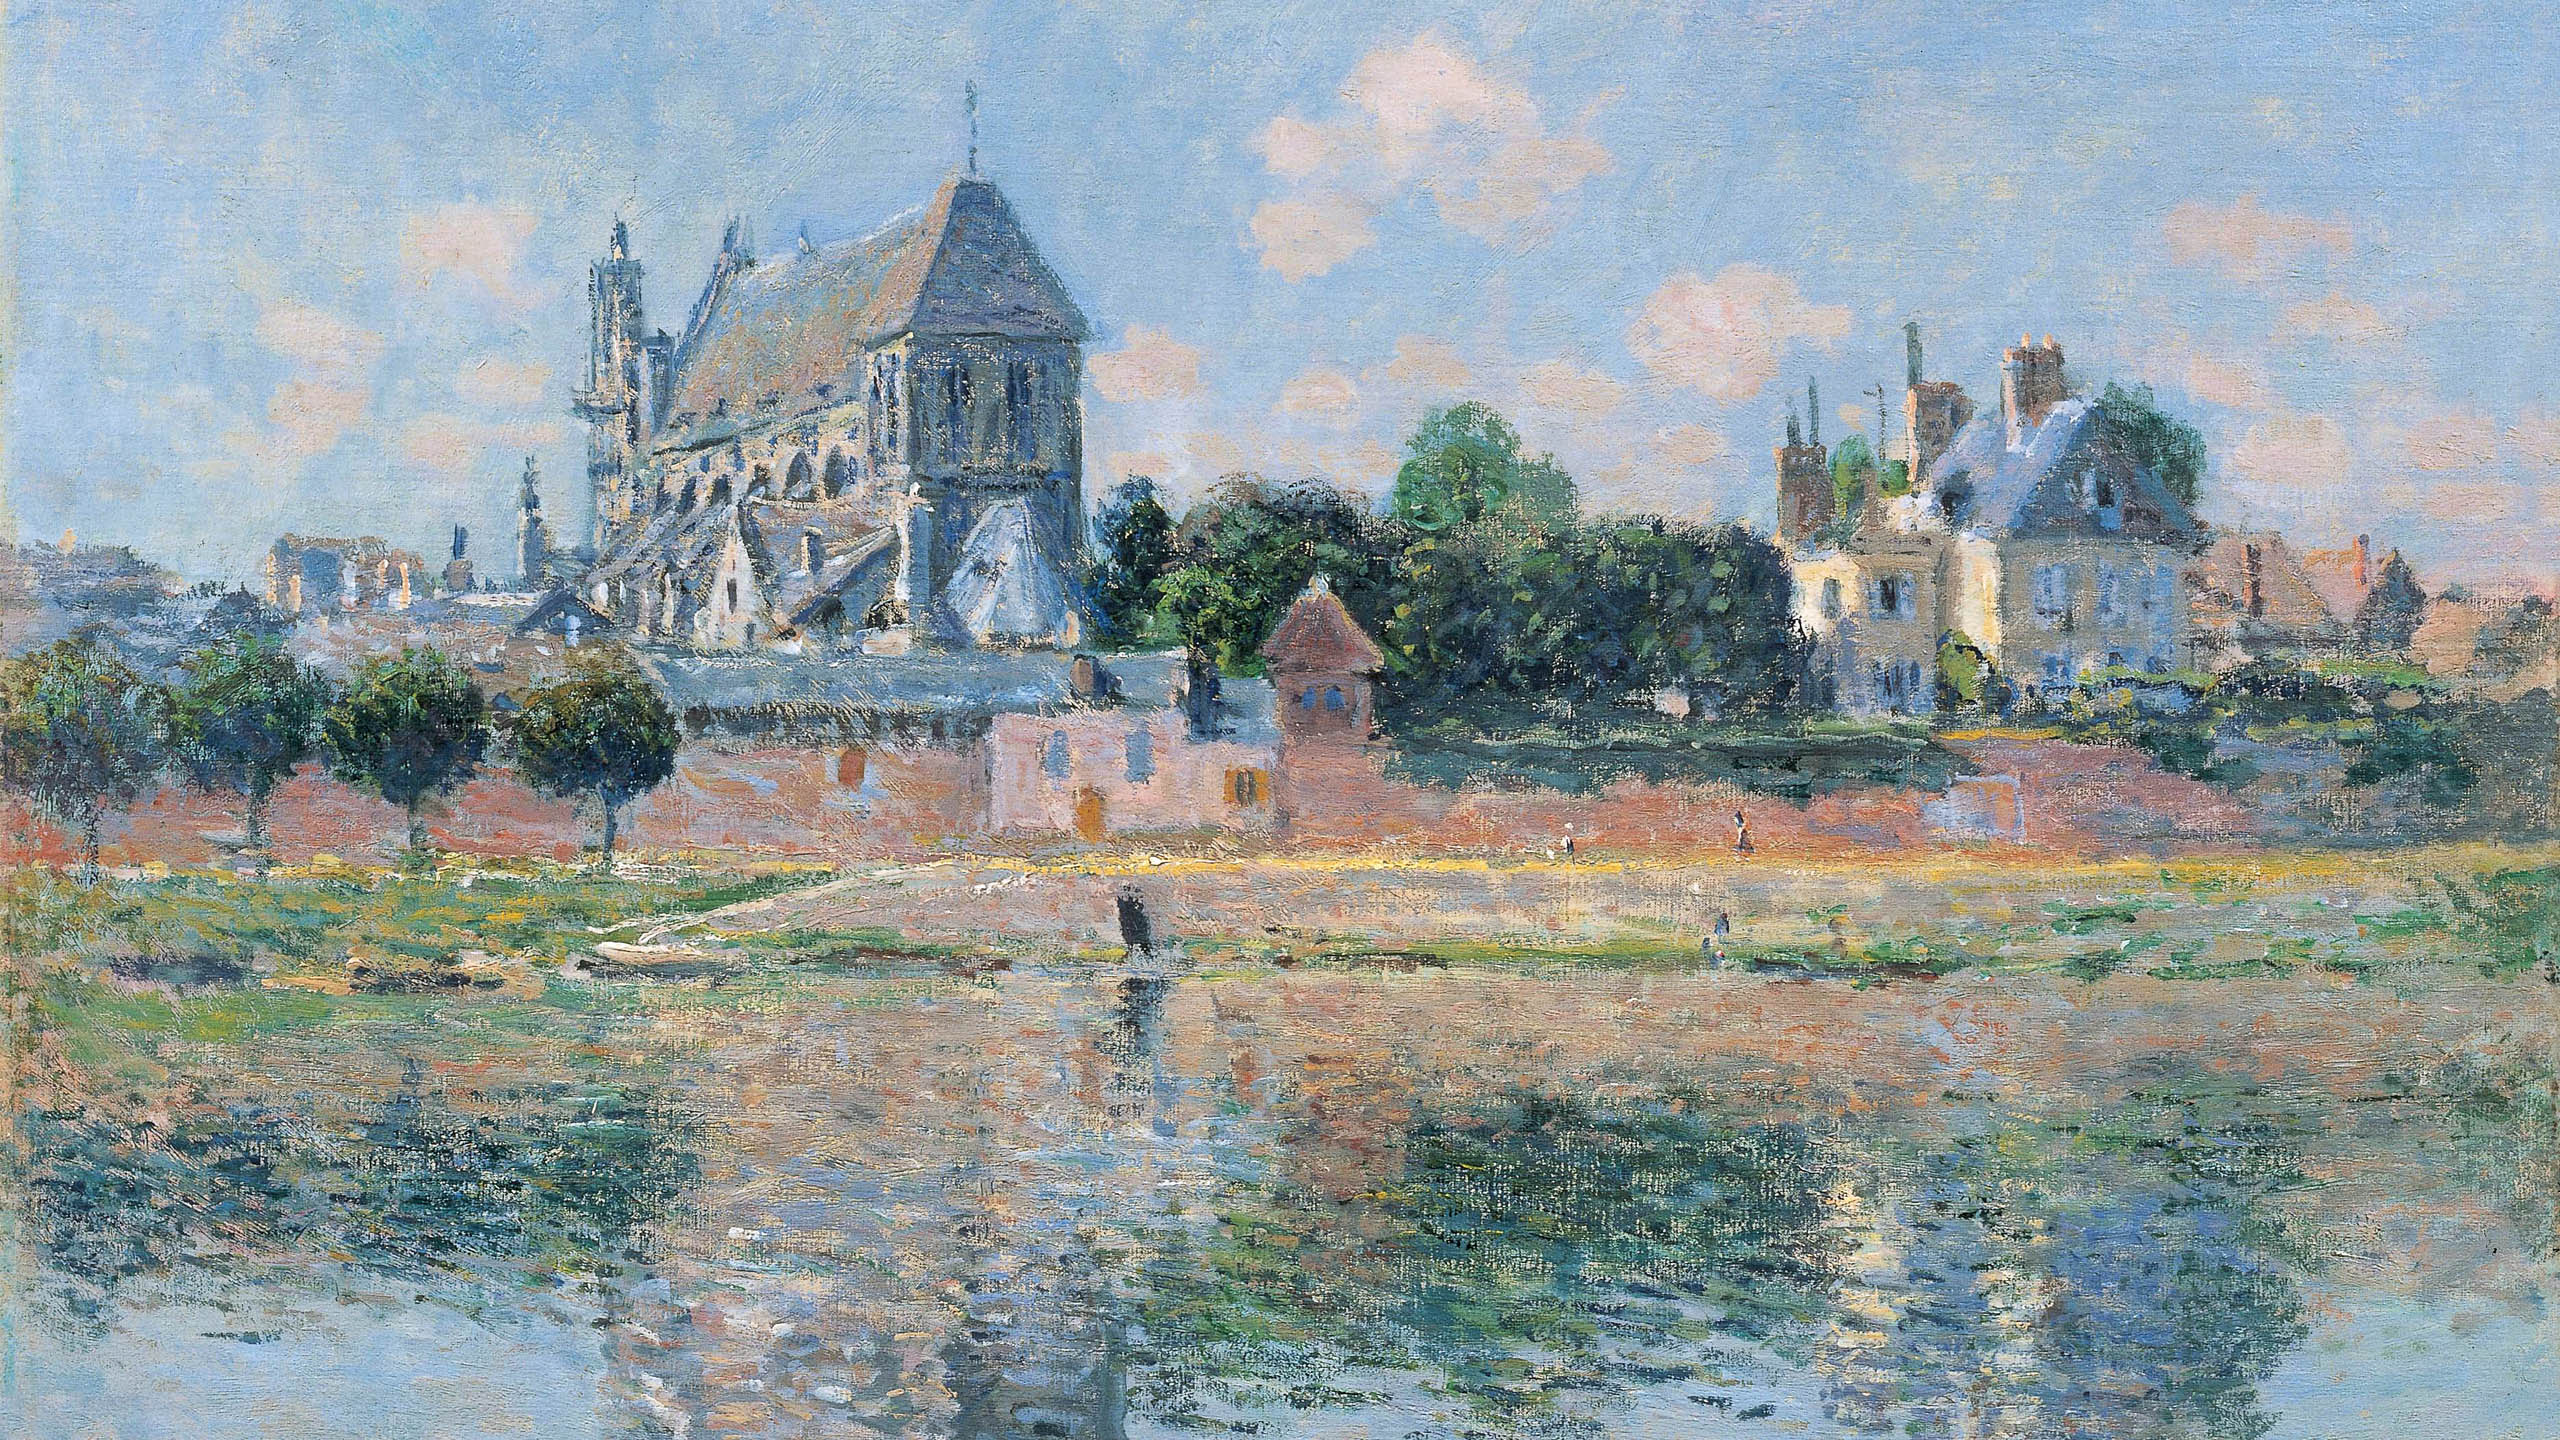 Claude Monet - View of the Church at Vernon 2560x1440